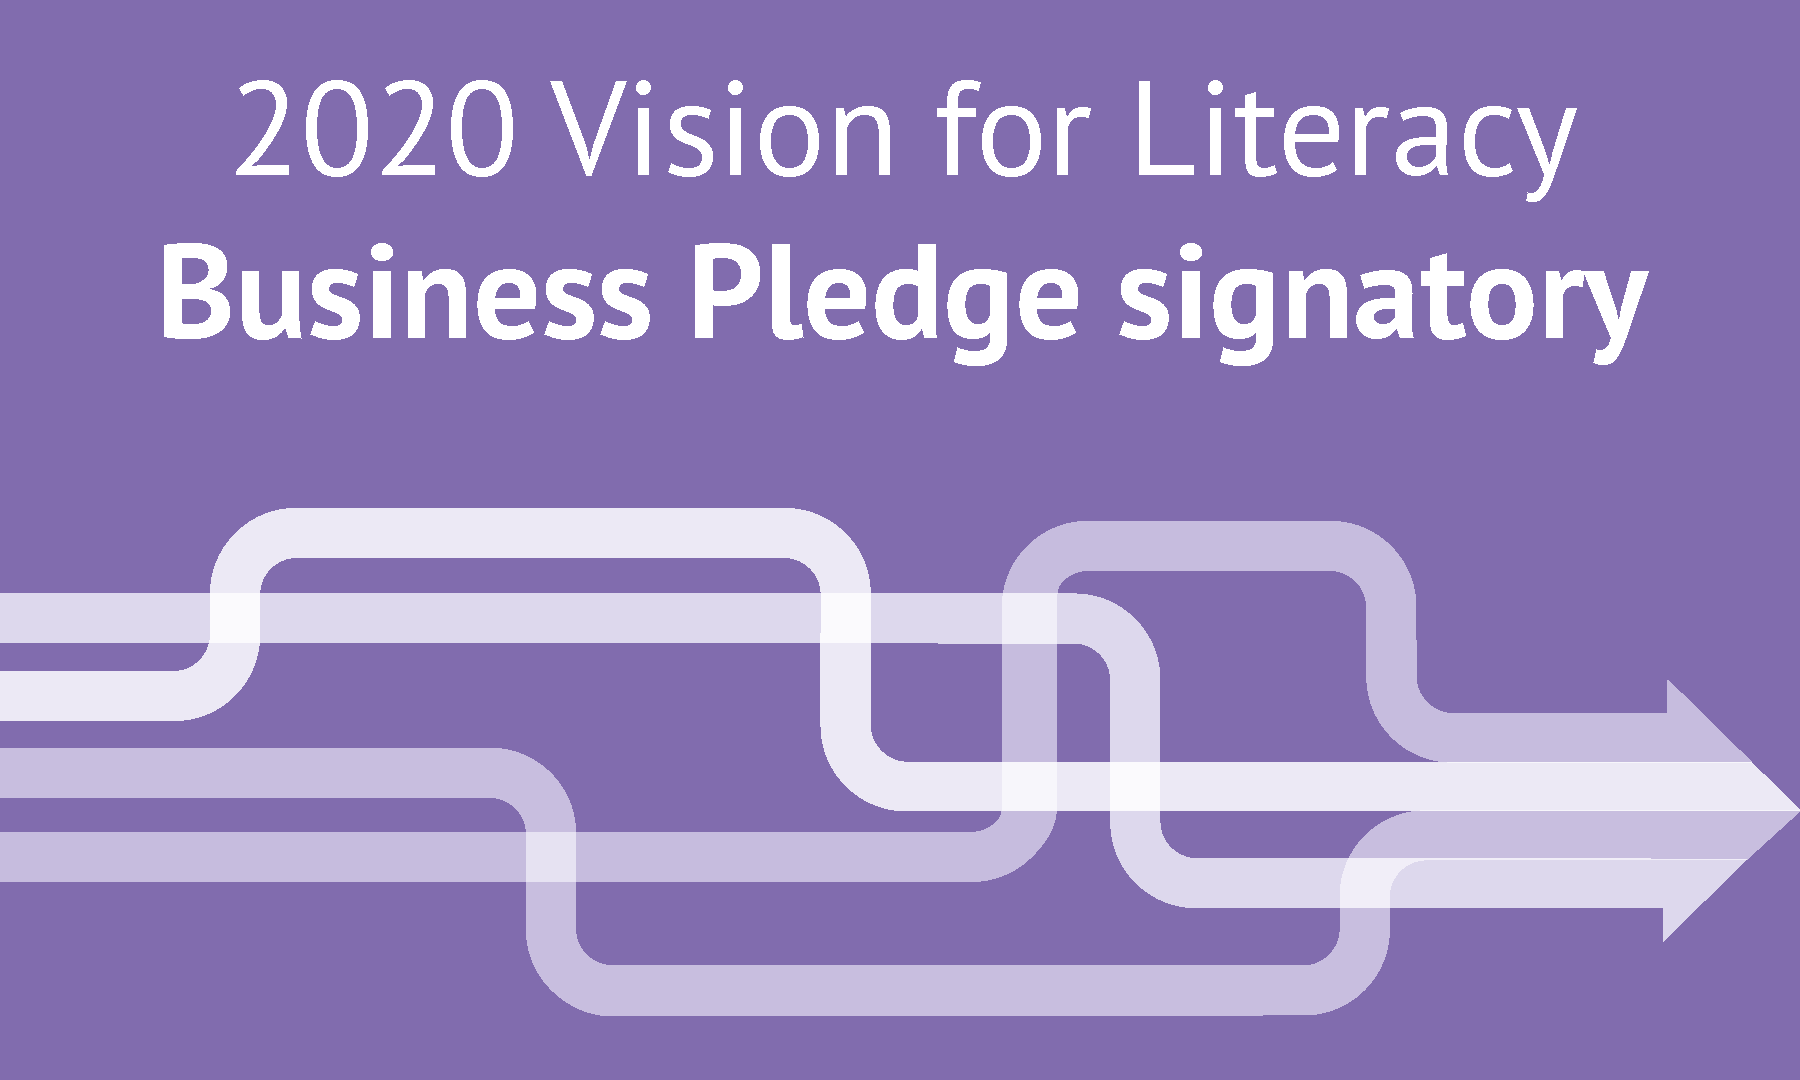 2020 Vision for Literacy Business Pledge